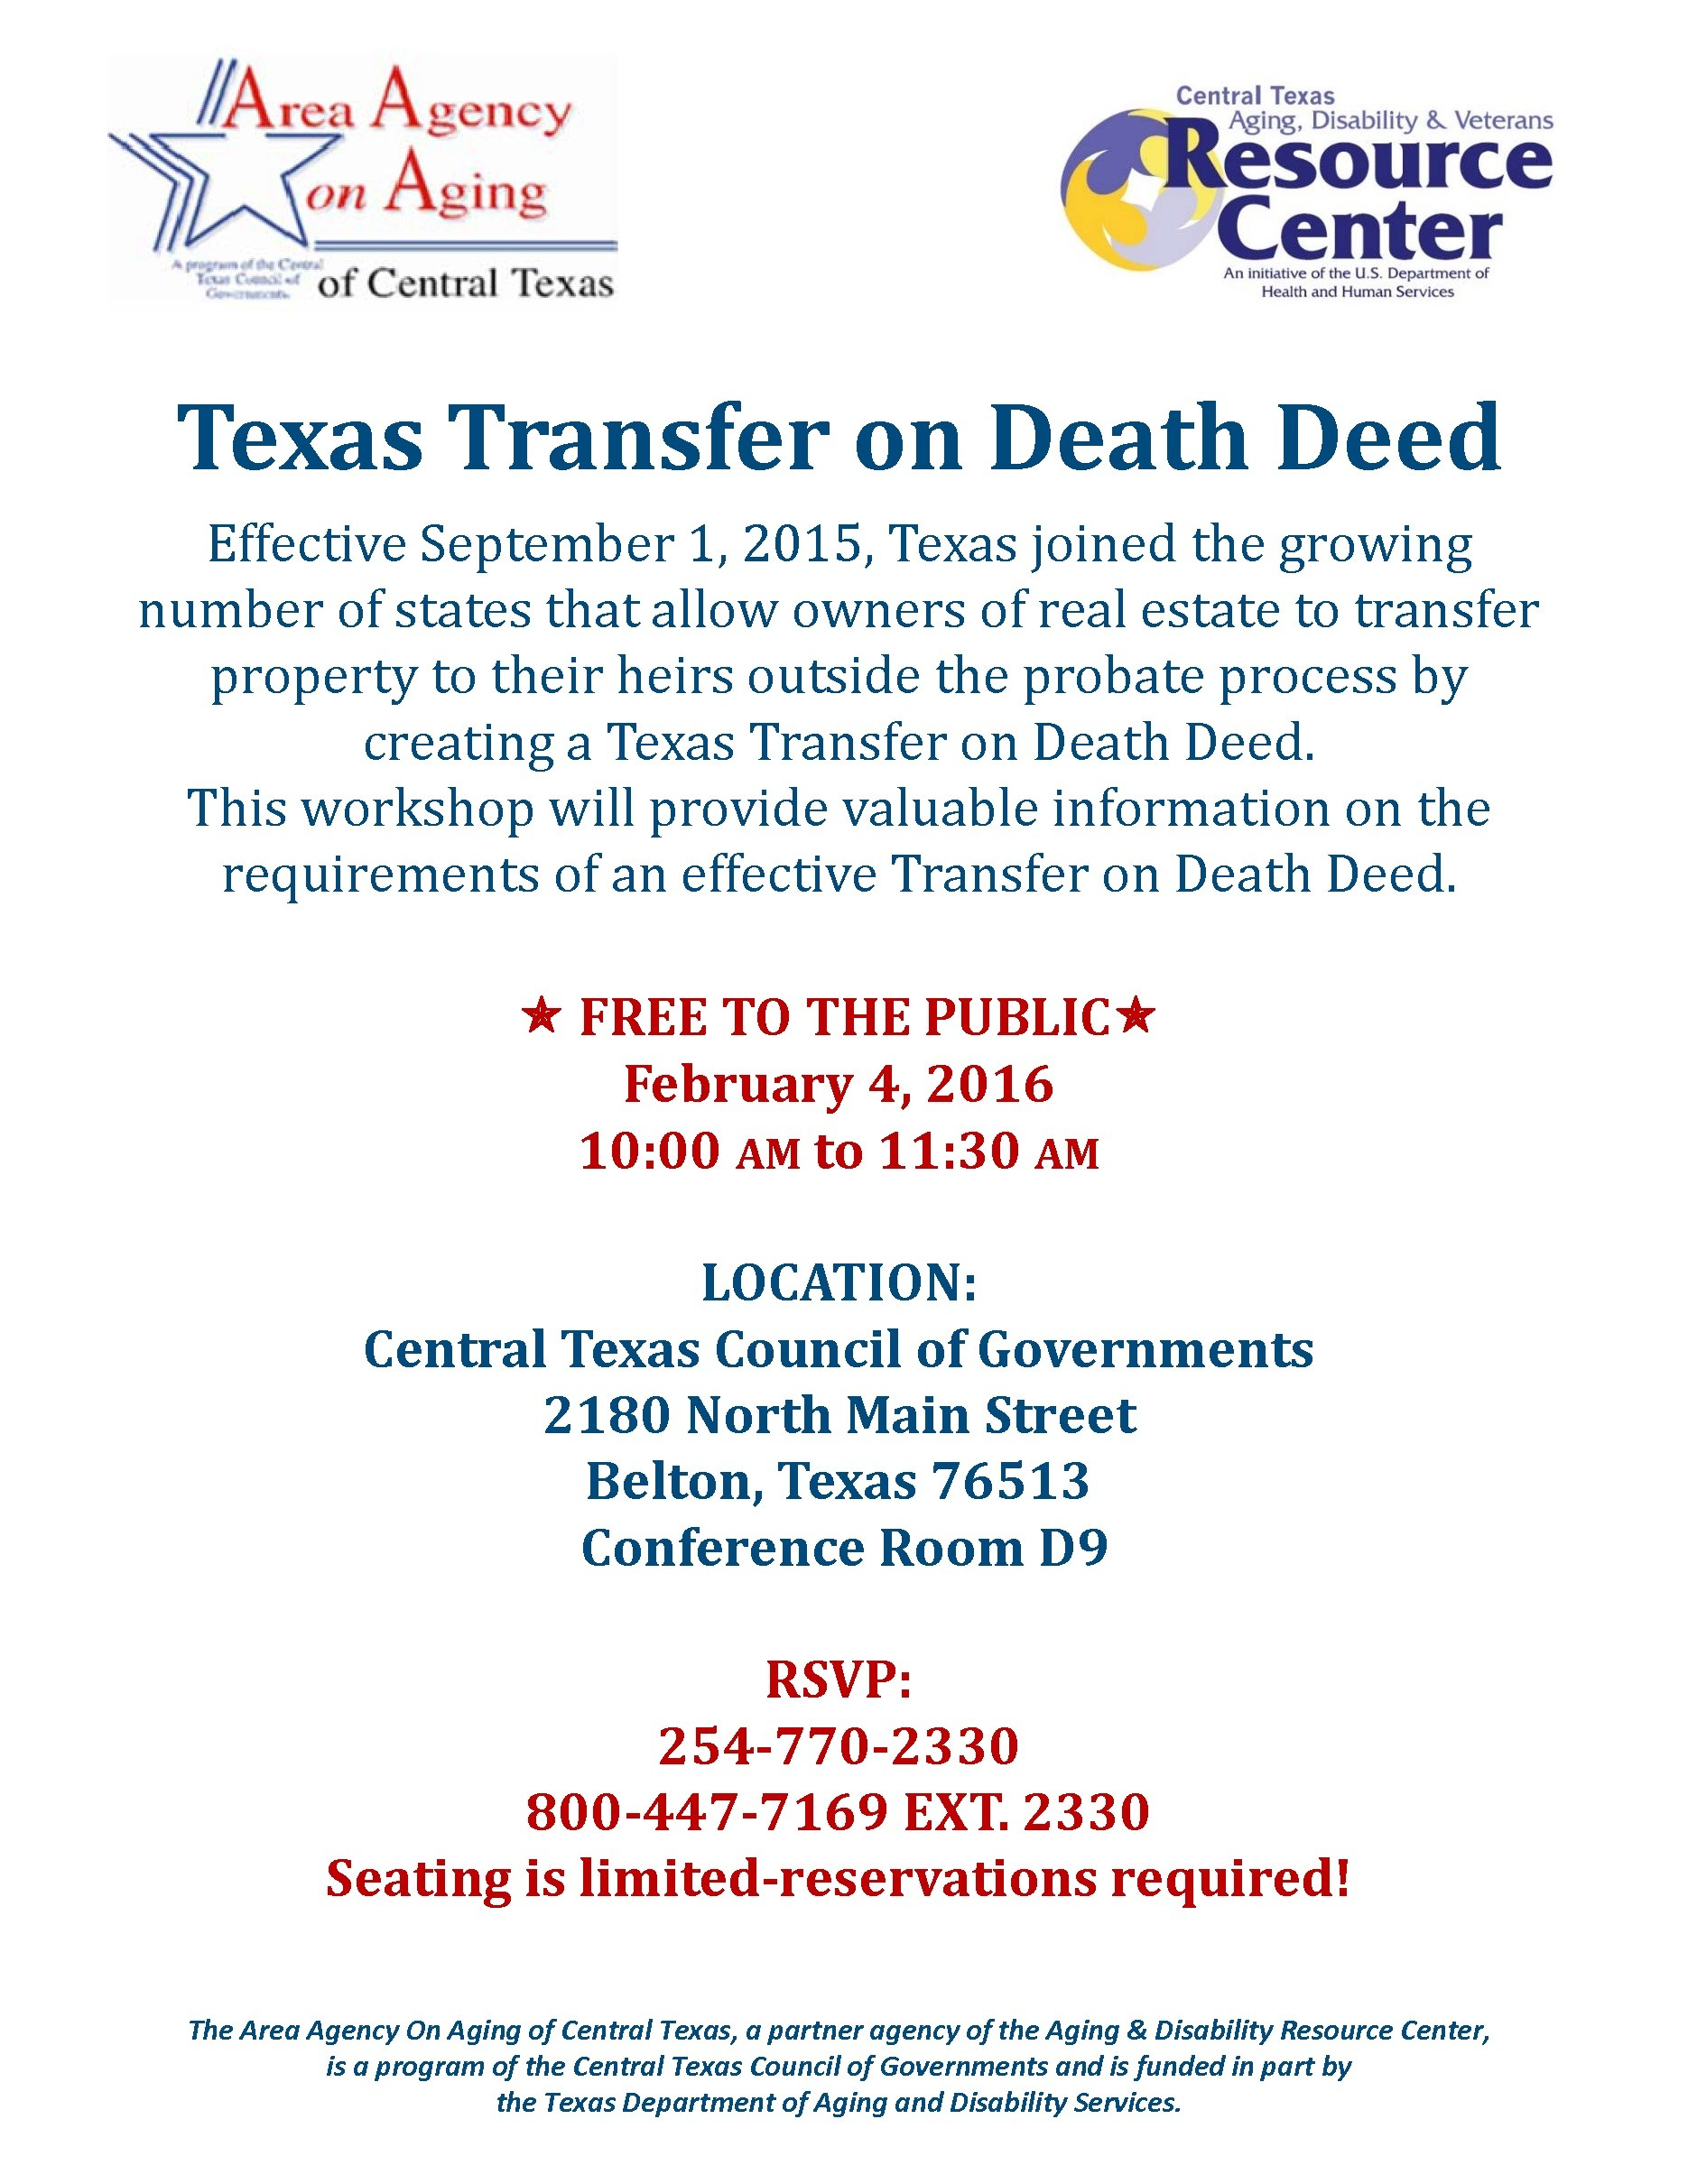 Central Texas Council of Governments – What Will Happen to Your ...